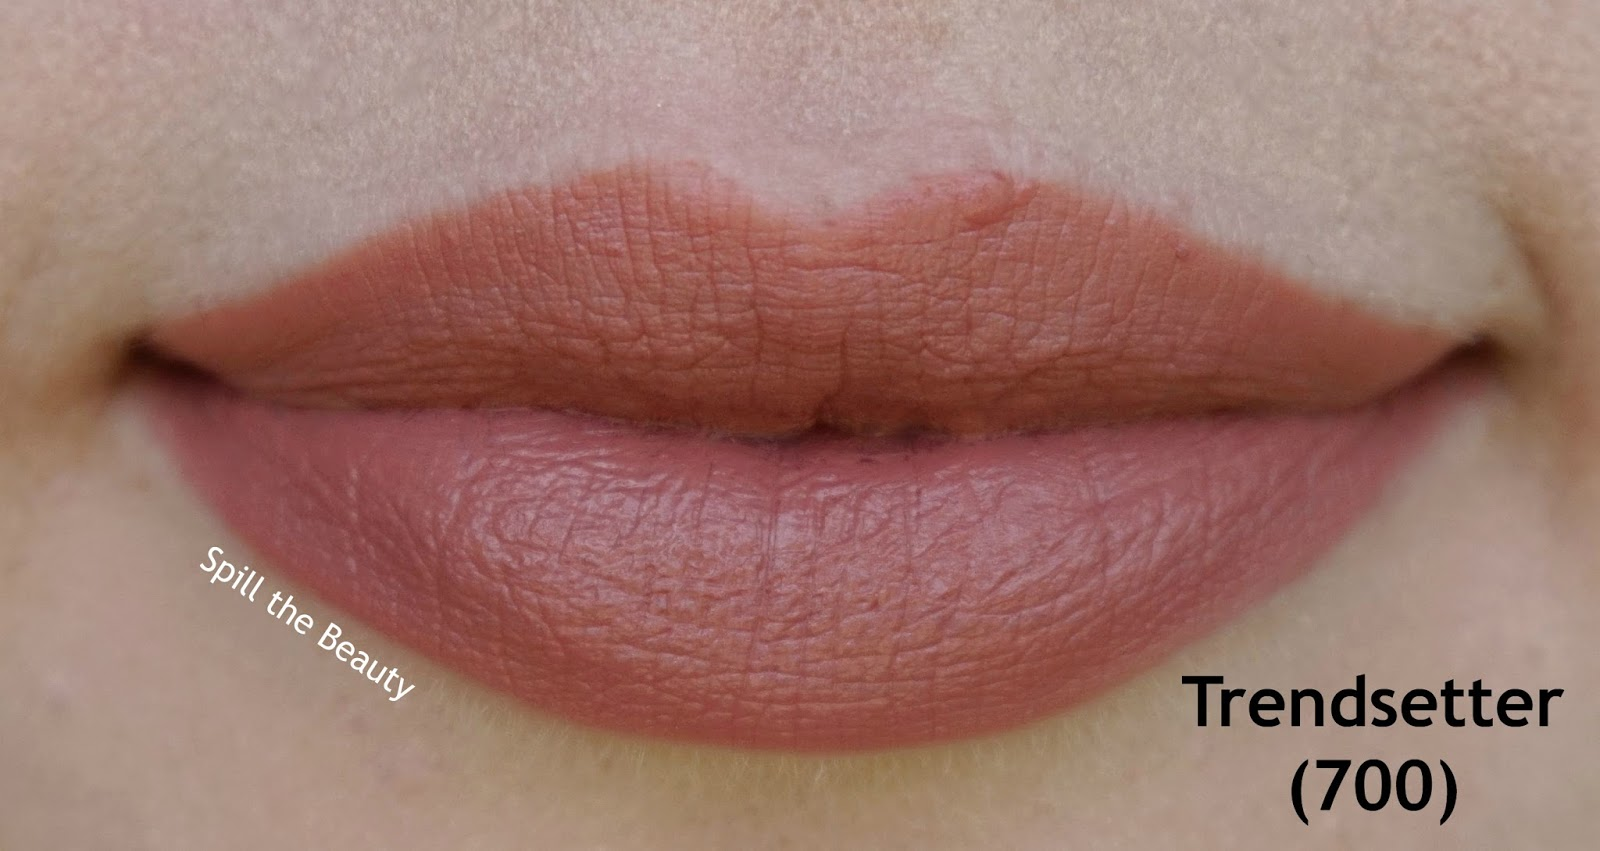 rimmel the only 1 matte lipstick review swatches 700 - trendsetter